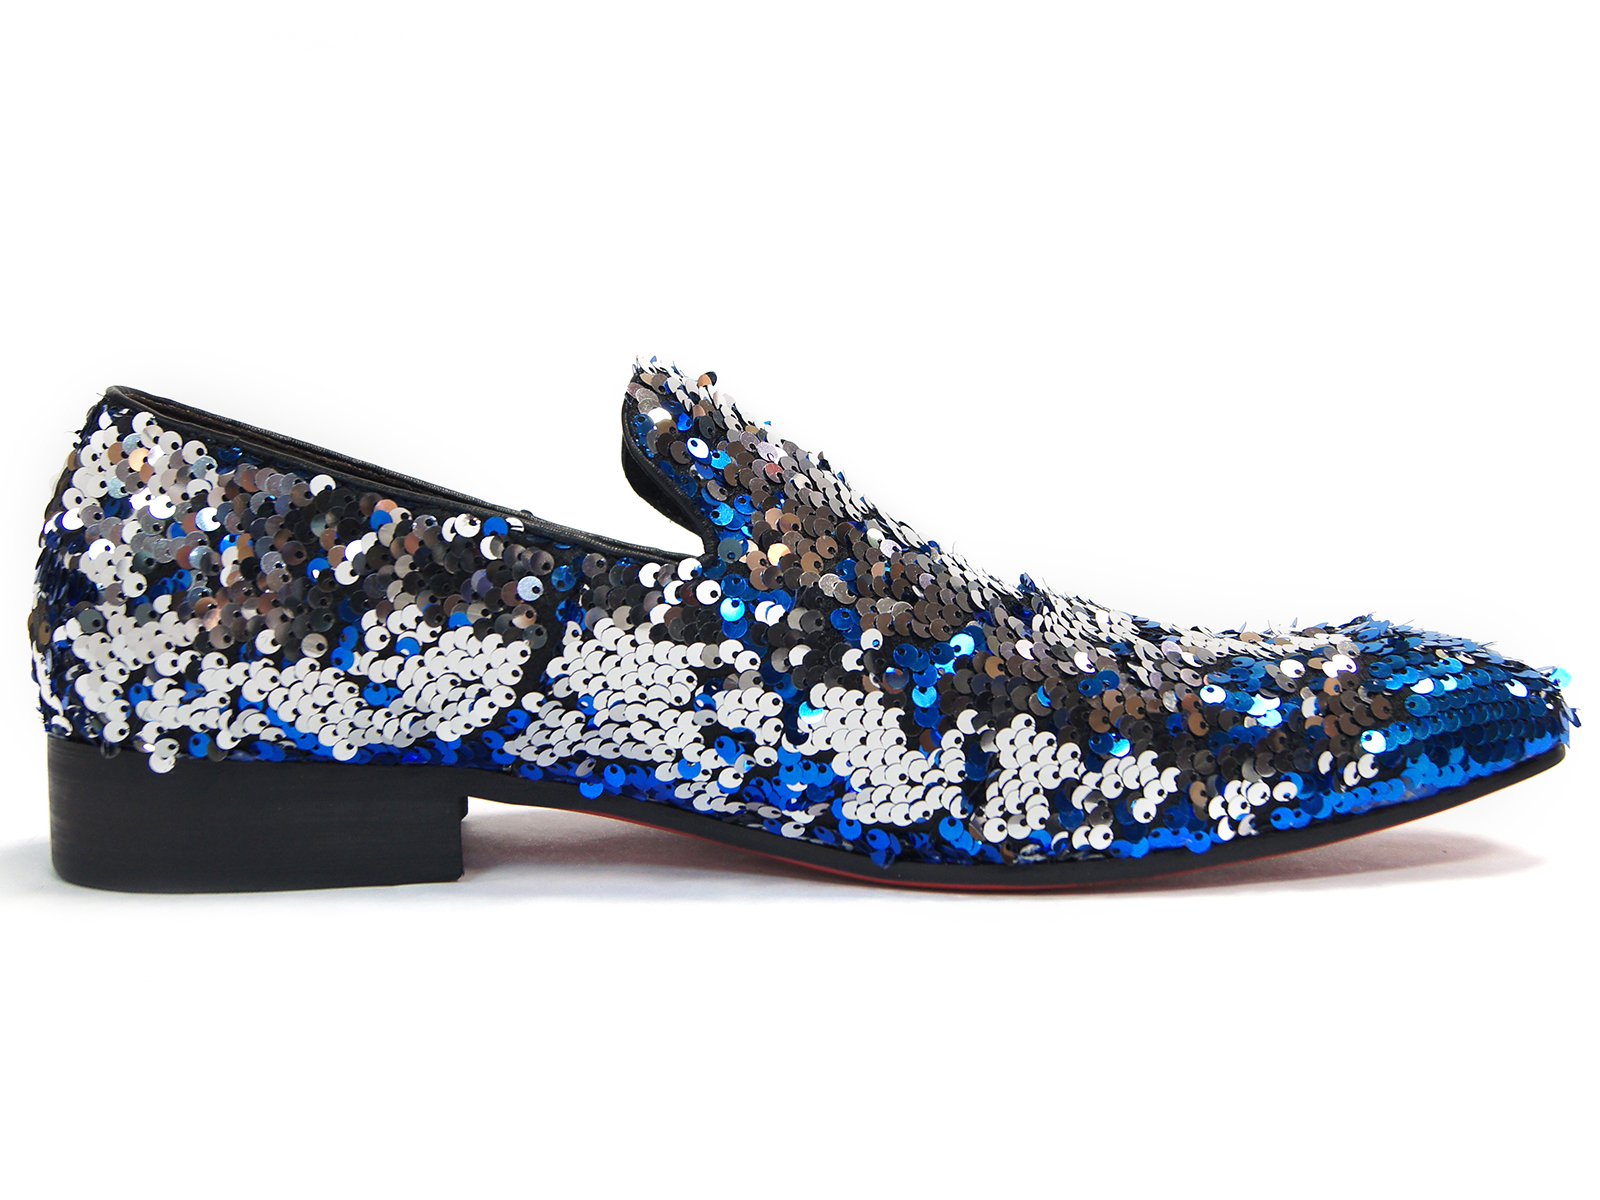 b255cd611 Fiesso Mens Blue Silver Sequin Embellishment Fashion Point Toe Slip On Shoe.  100% Satisfaction GuaranteedFree ...